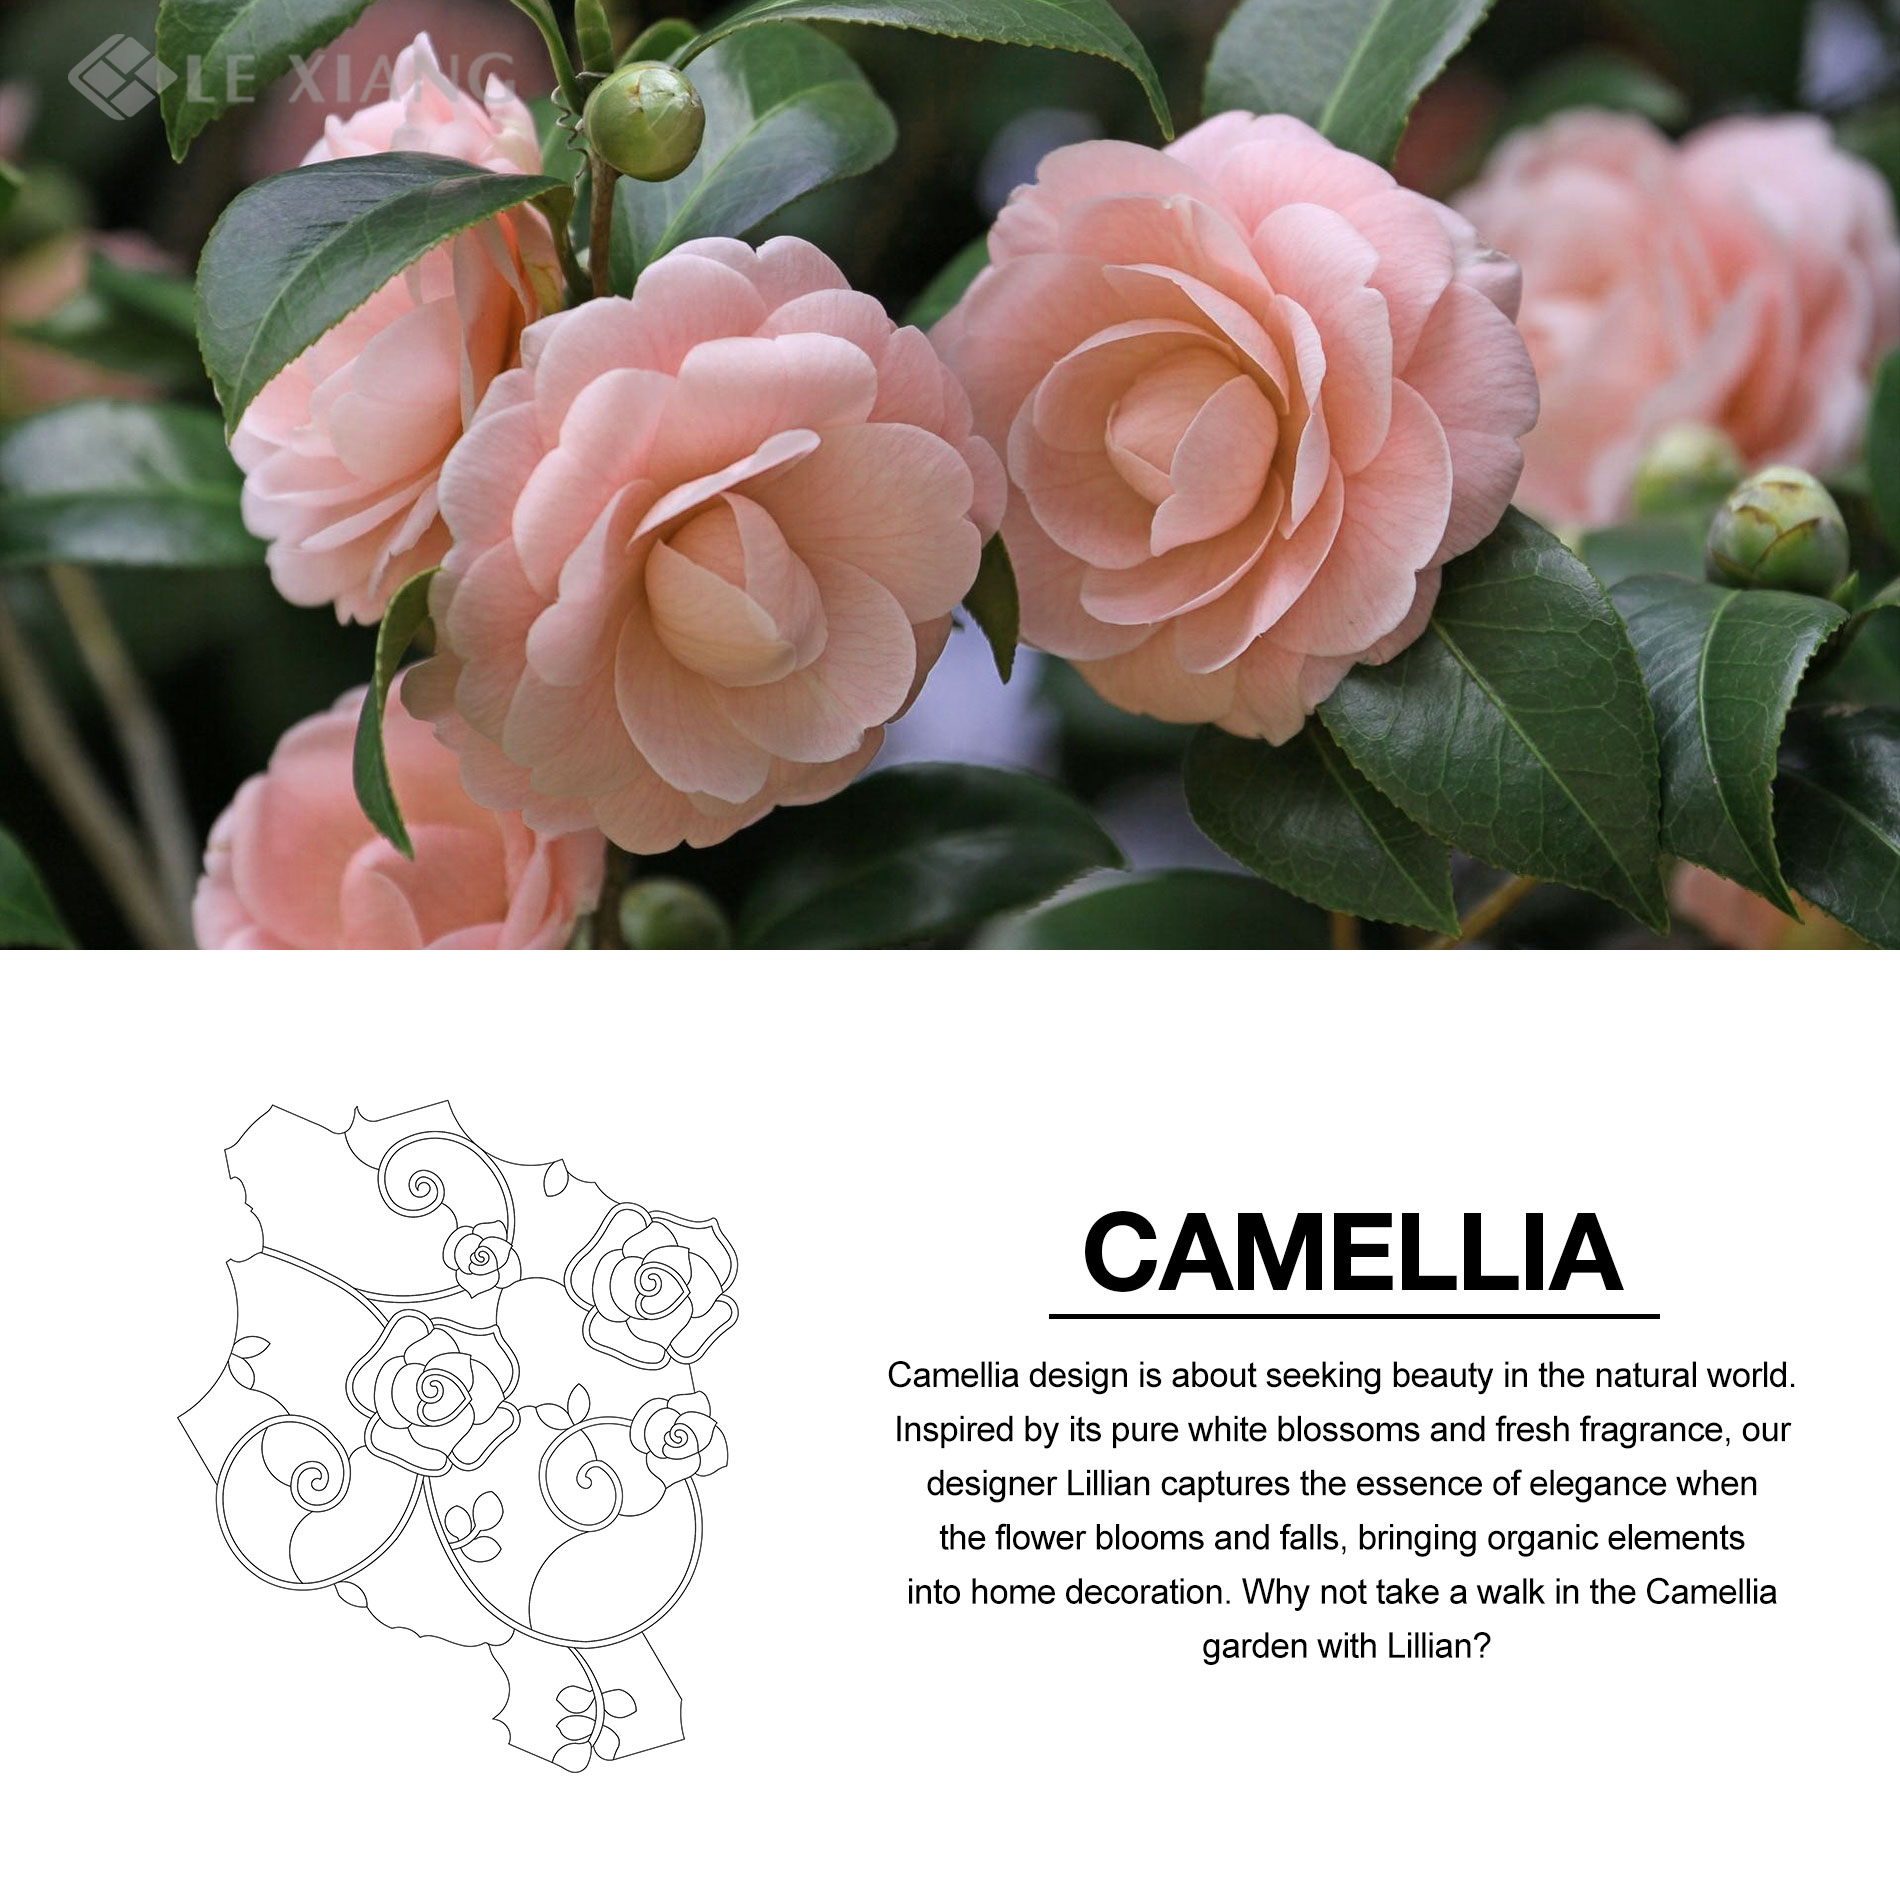 Camellia-WaterJet-Cut-Mosaic-Stone-Tile-For-Bothroom-Wall-8